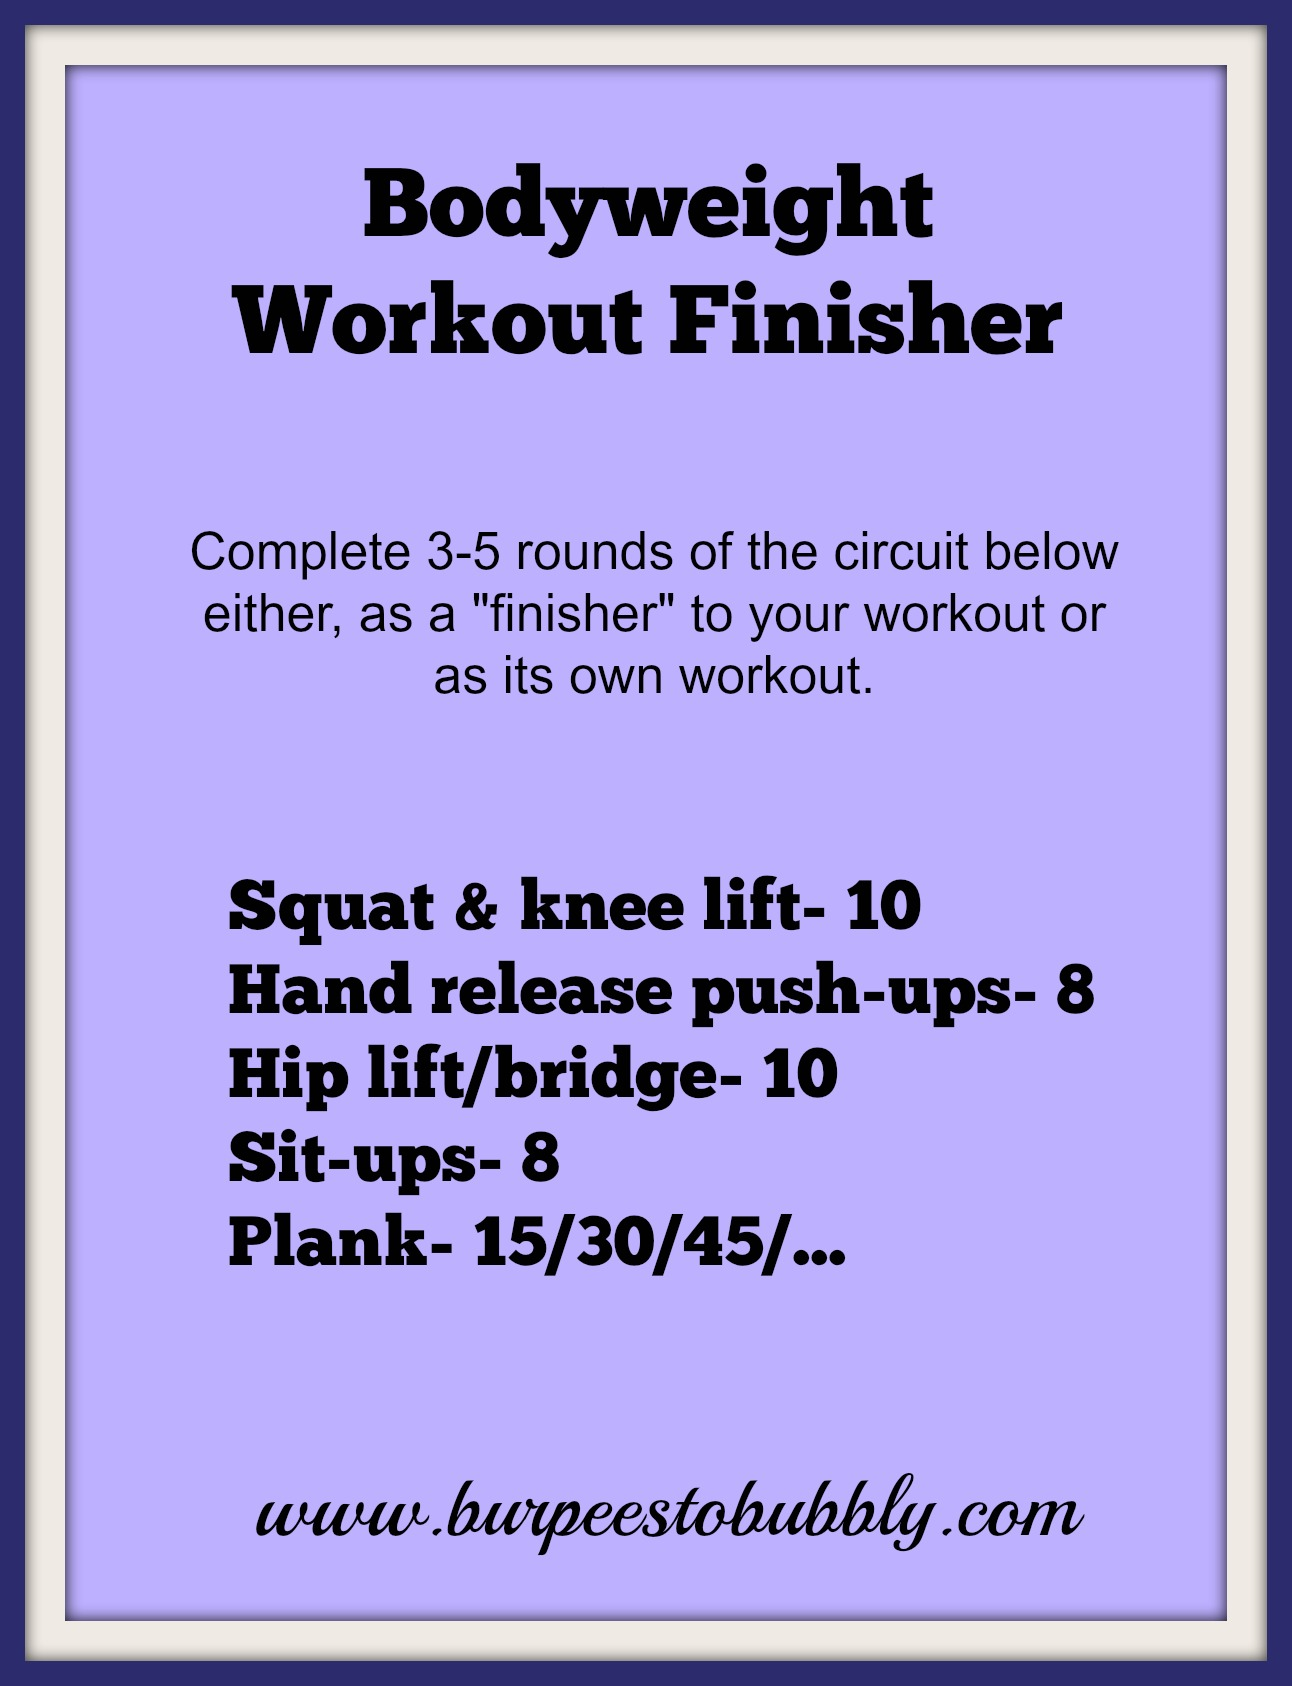 Wednesday Workout Bodyweight Finisher